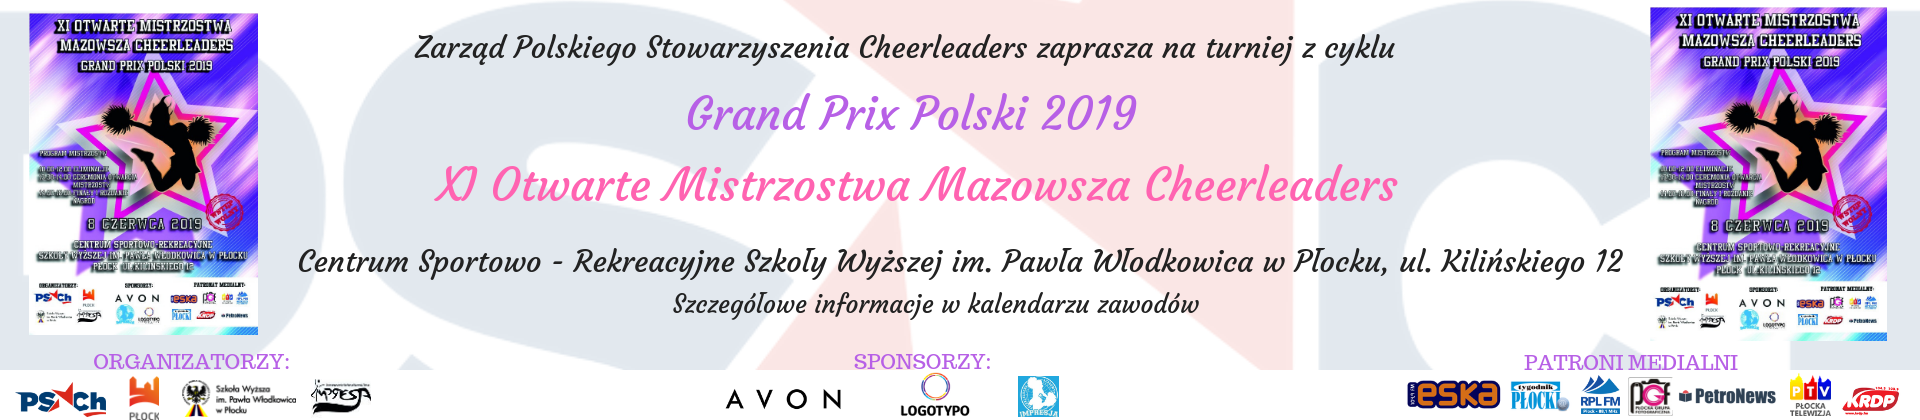 Grand Prix Polski Cheerleaders 2018 (1)